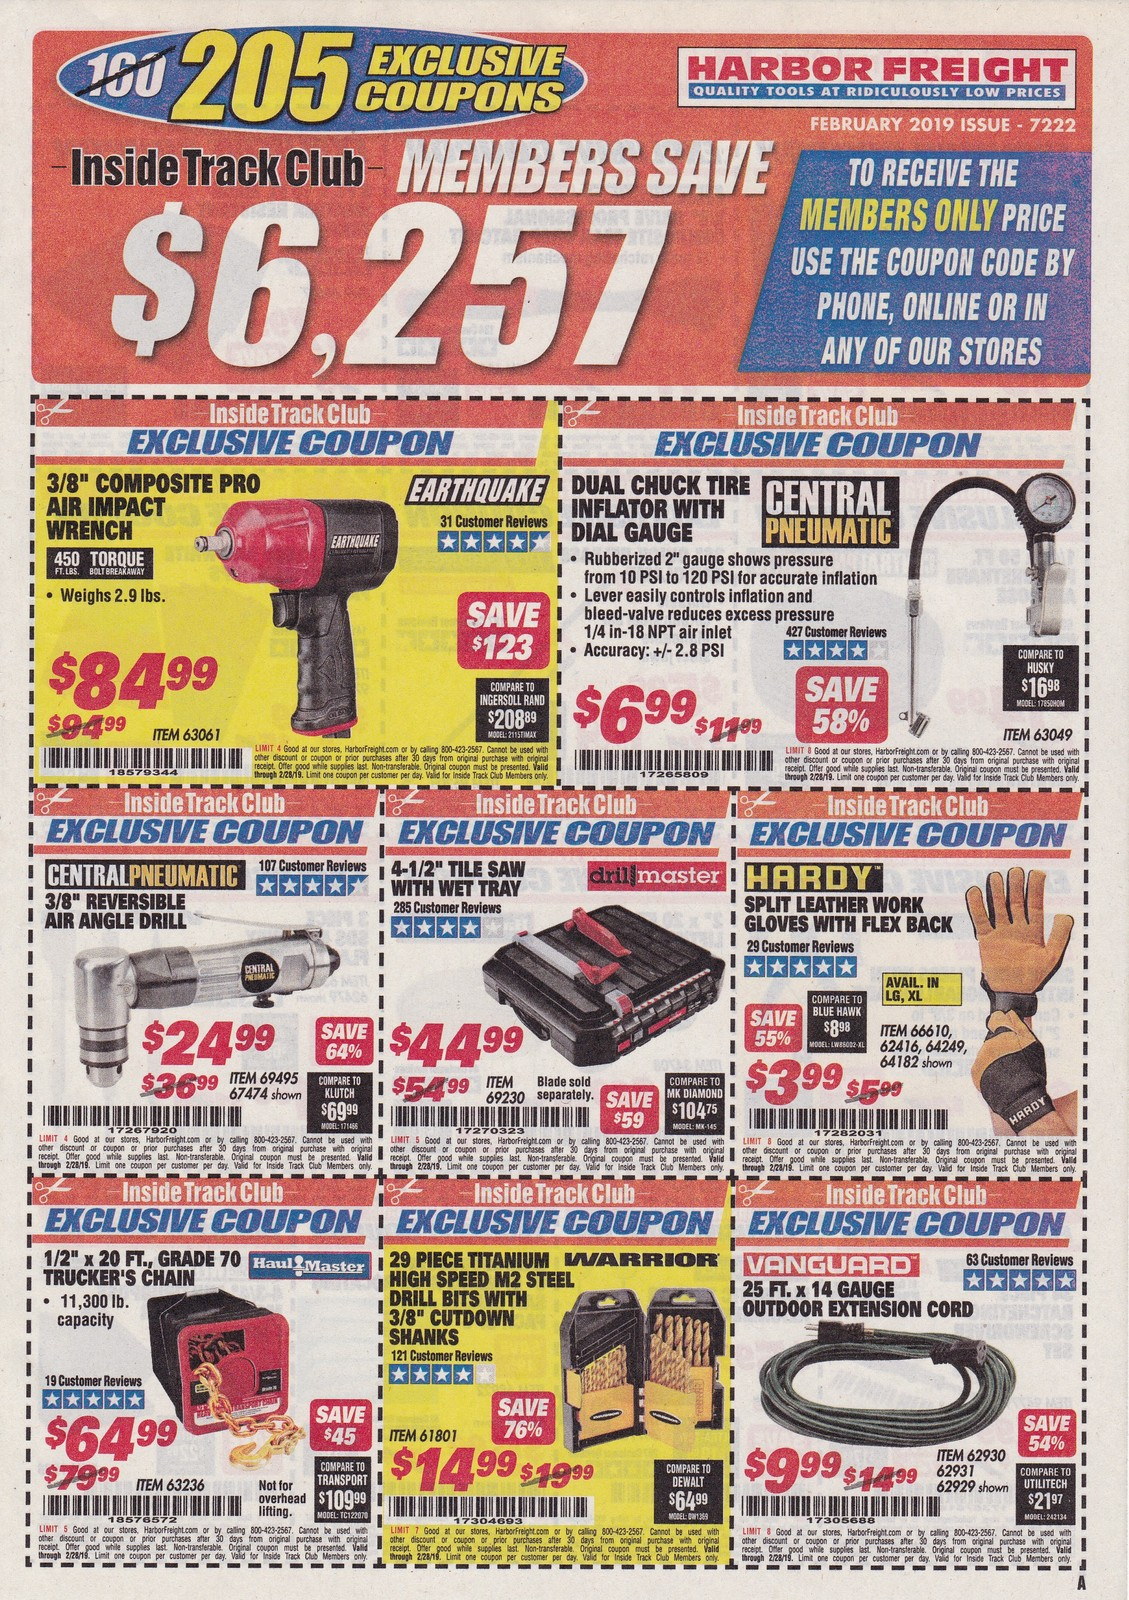 Harbor Freight Inside Track Club Coupons February 2019 Struggleville